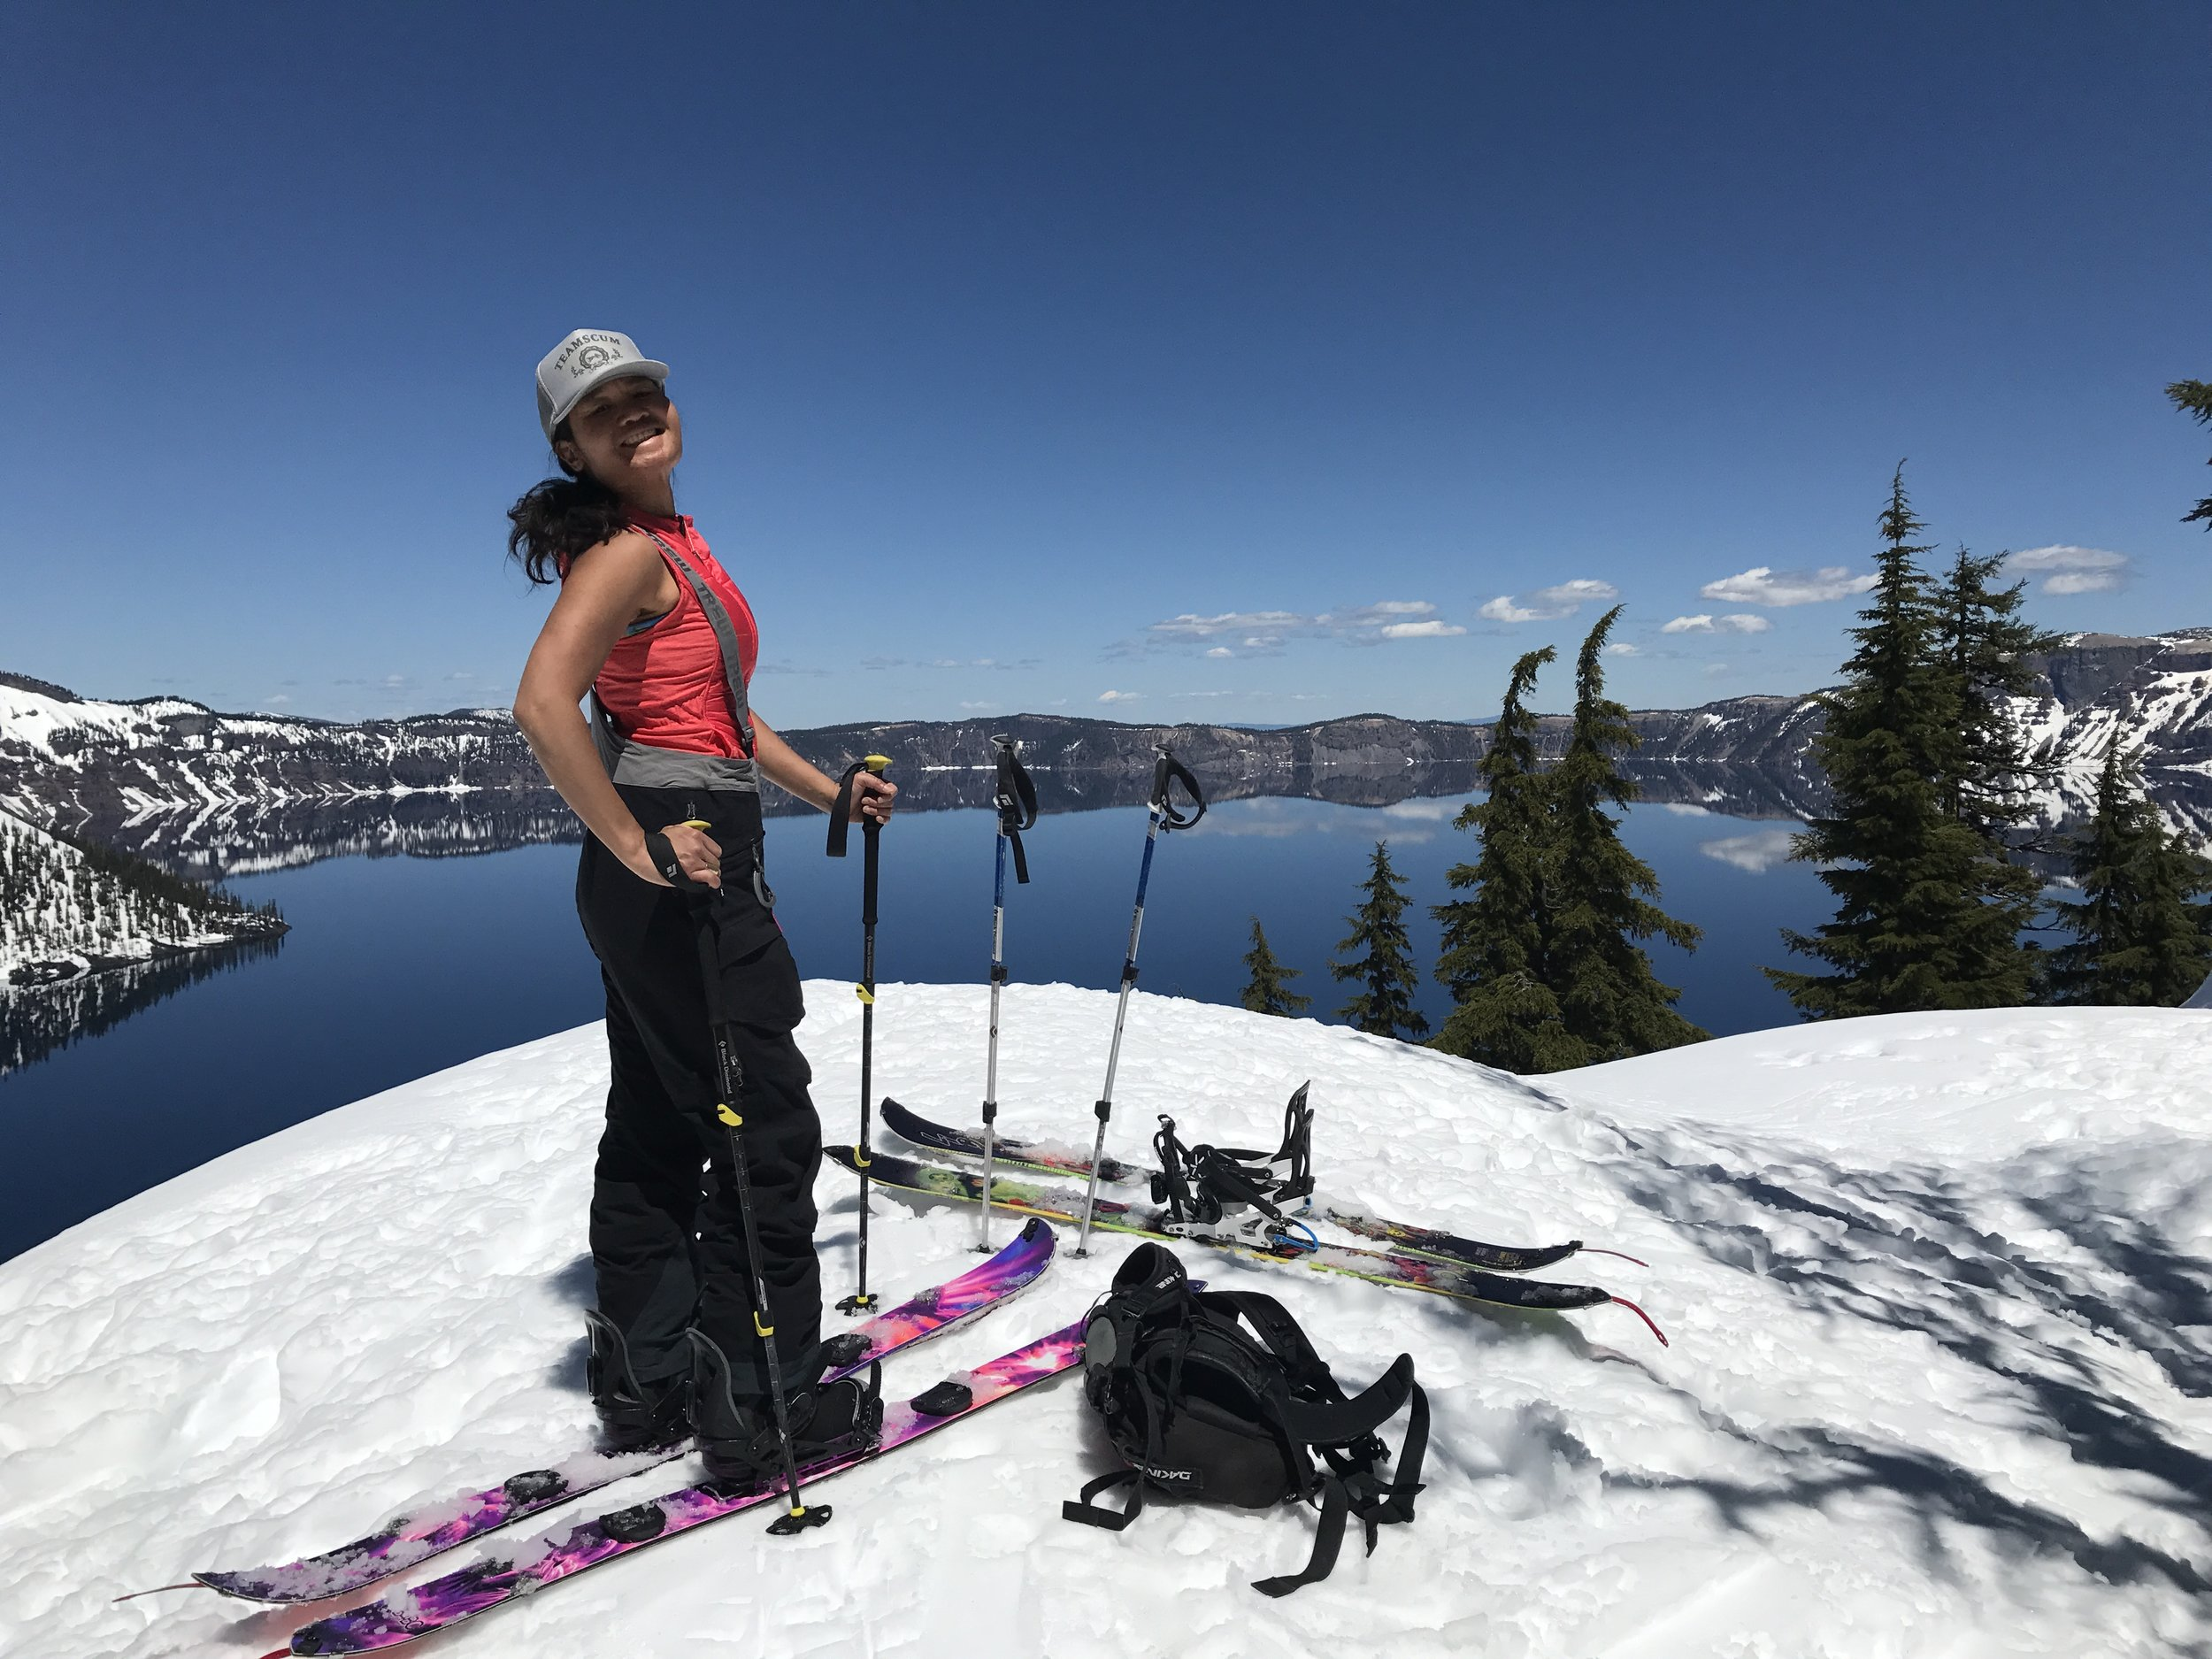 Snow conditions around Crater Lake were pretty crap, but the view was beautiful. So, not so much downhill riding, but super enjoyable circumnavigating the lake on skins.